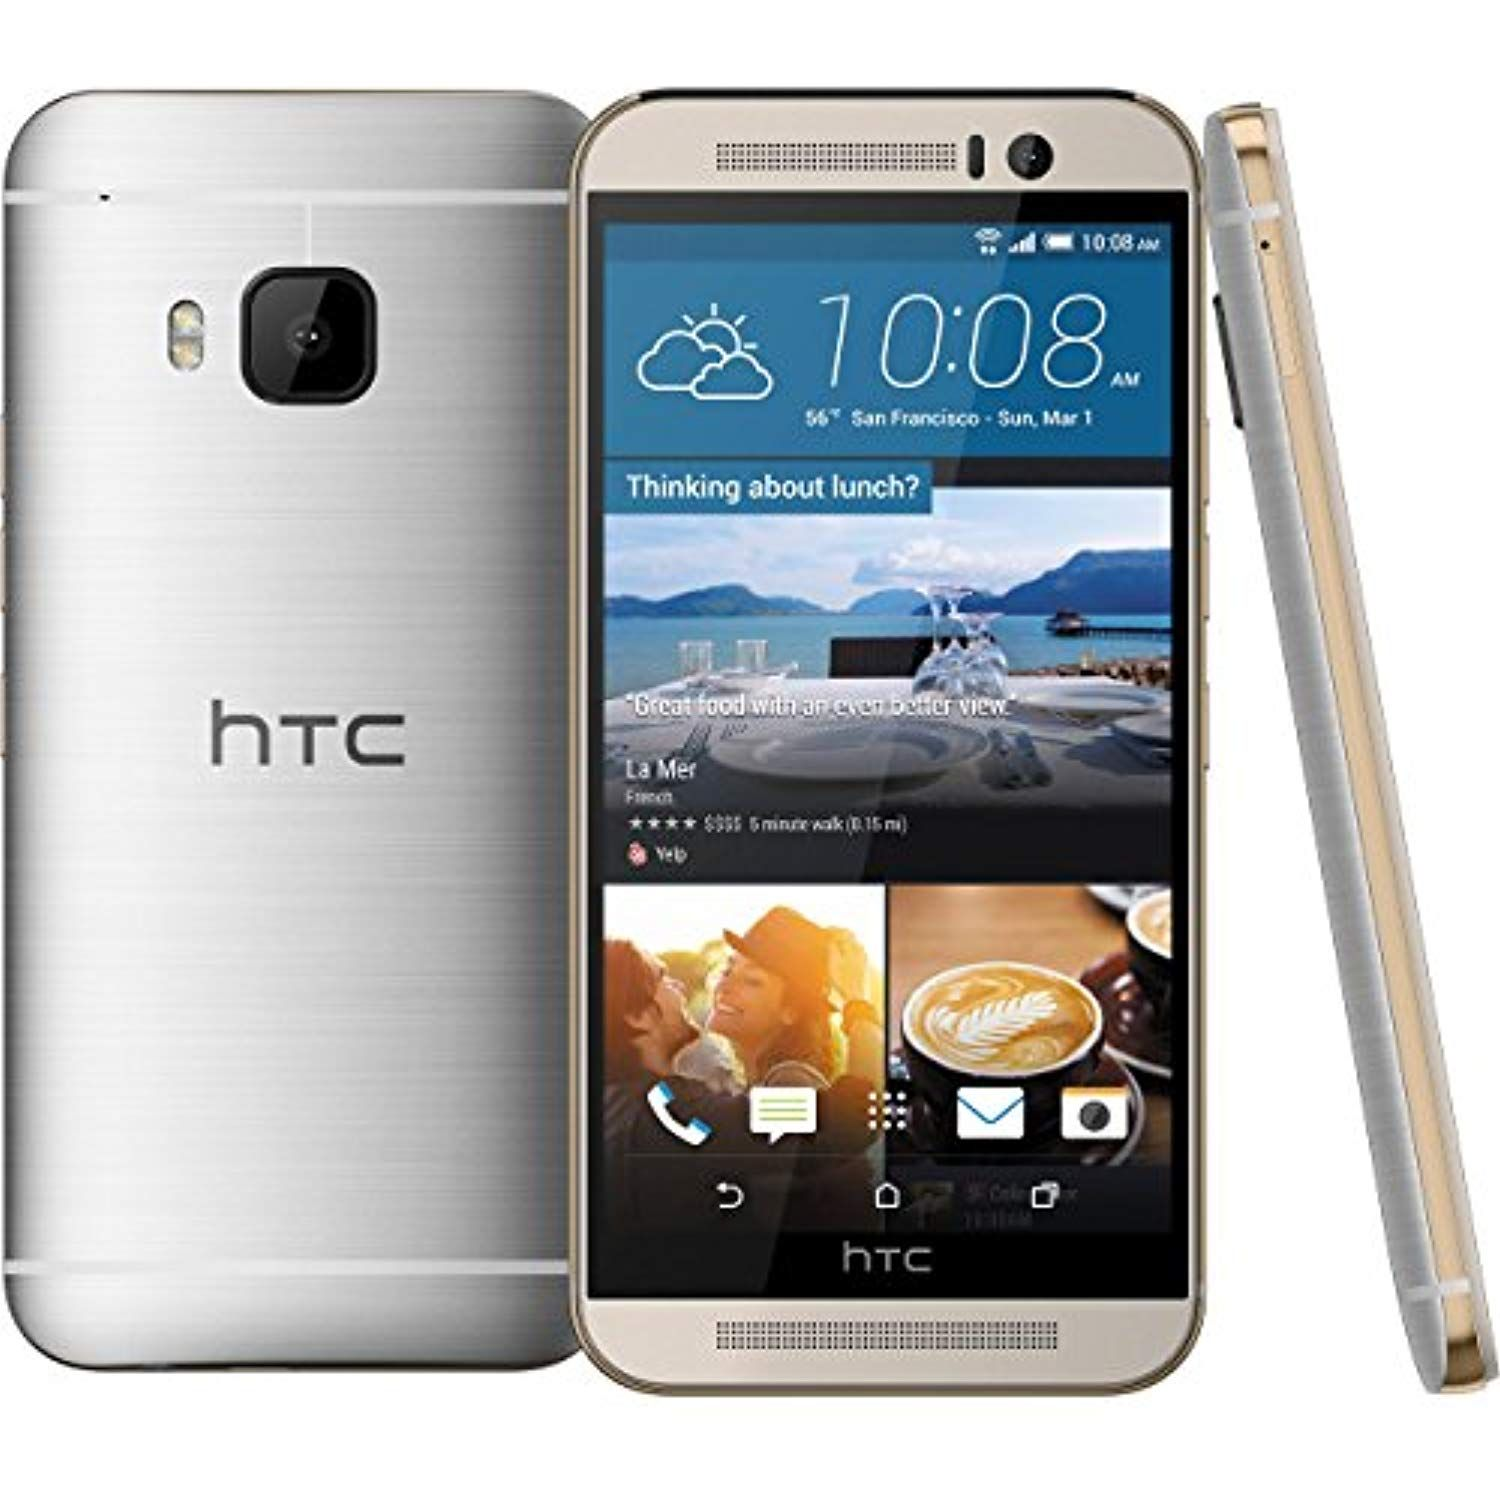 HTC one M8 32GB Gold/Silver Verizon Wireless (Certified